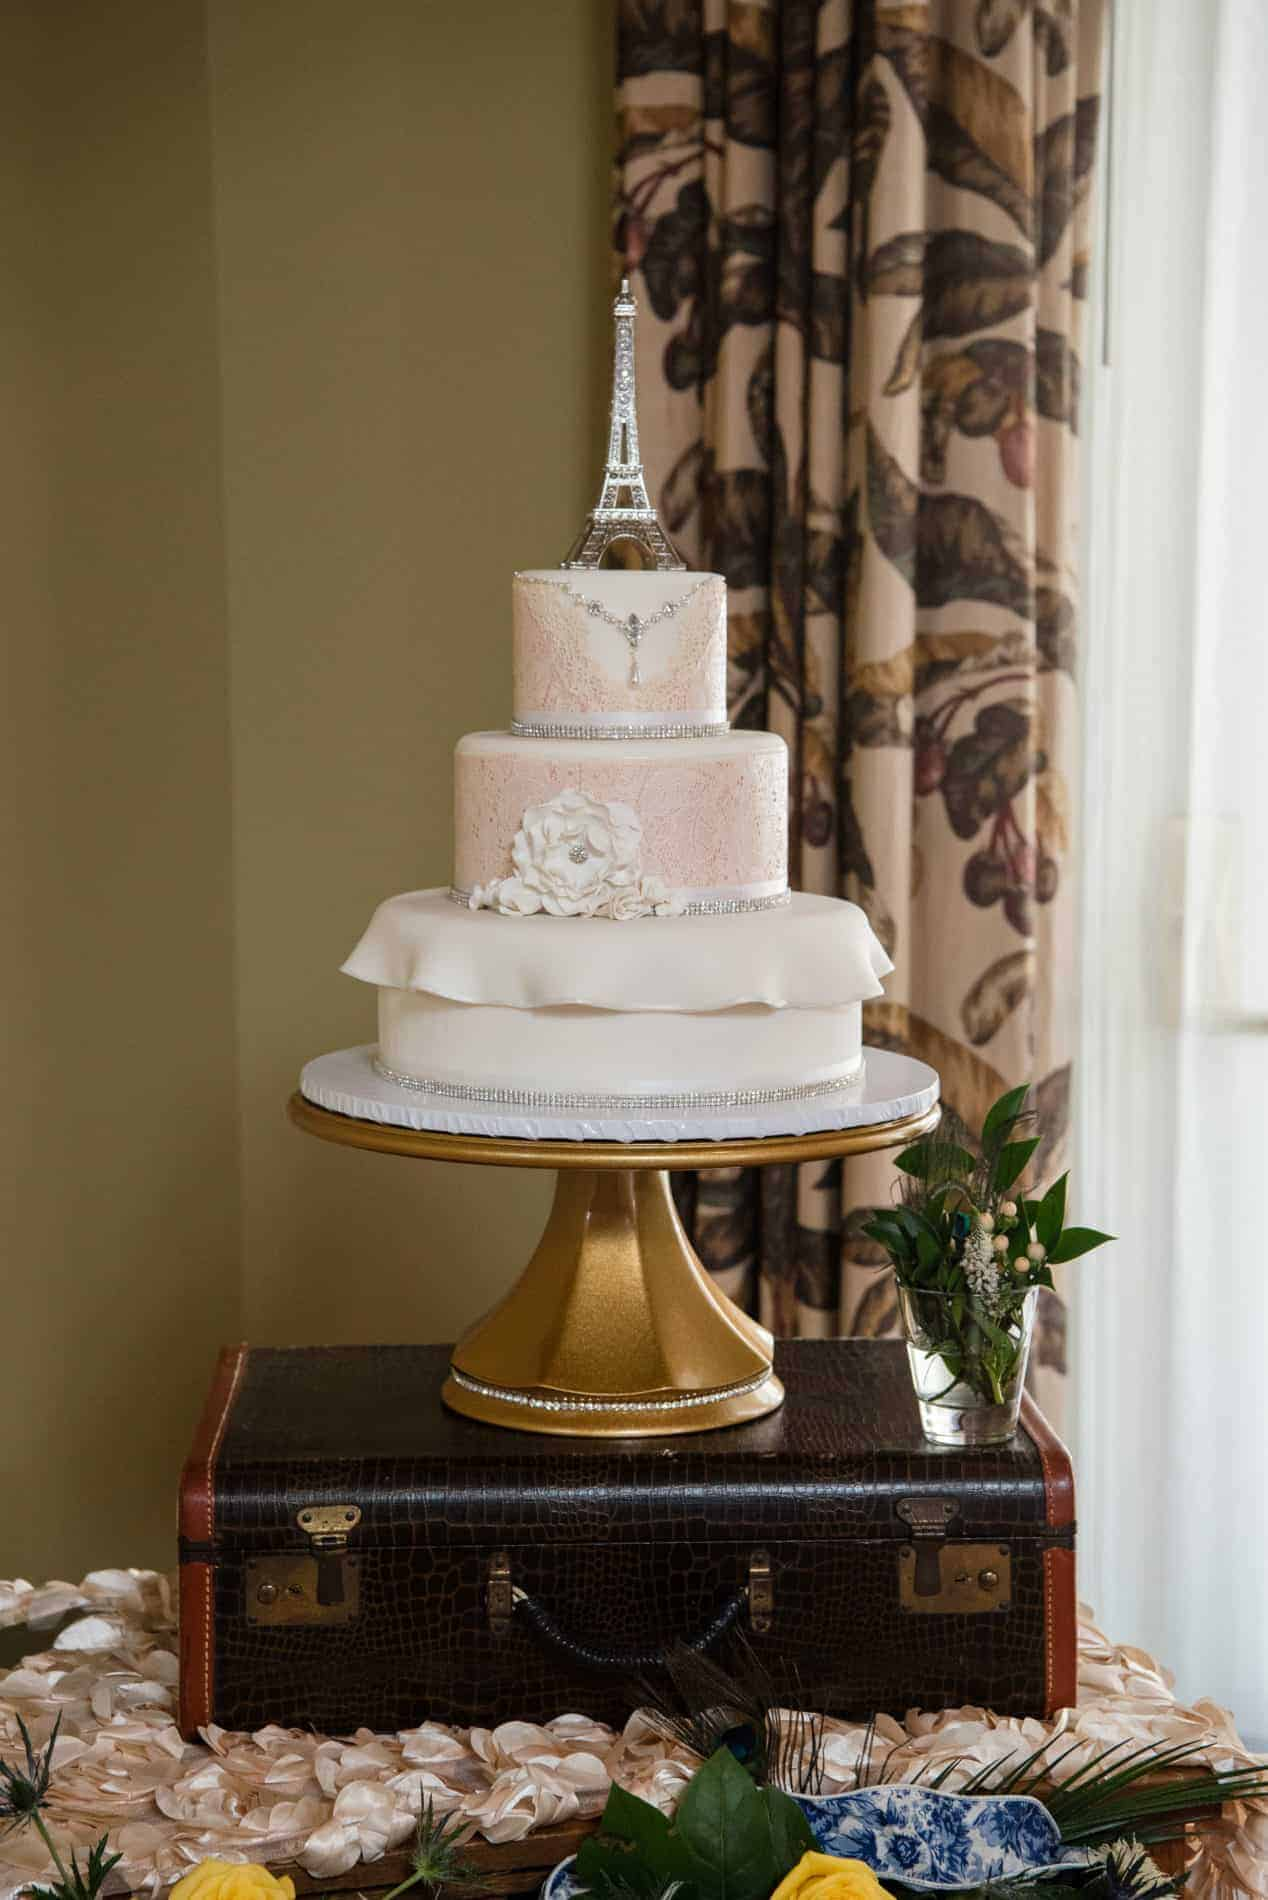 The Cake Designer were Patty & Terry Ames. They are owners of Cake Designers